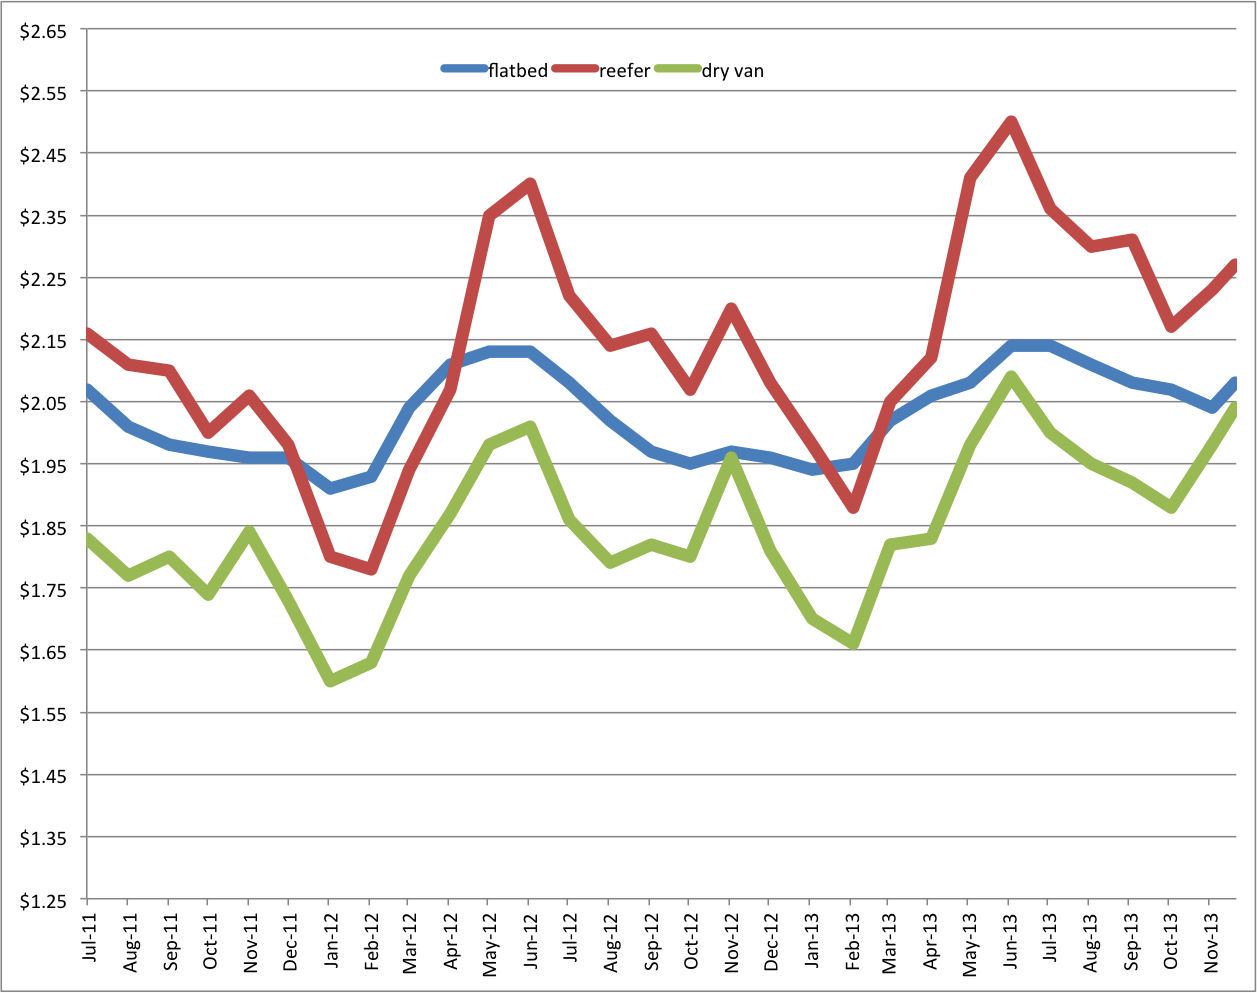 Van, reefer, flatbed rates all surge to close 2013 with strong year over year growth